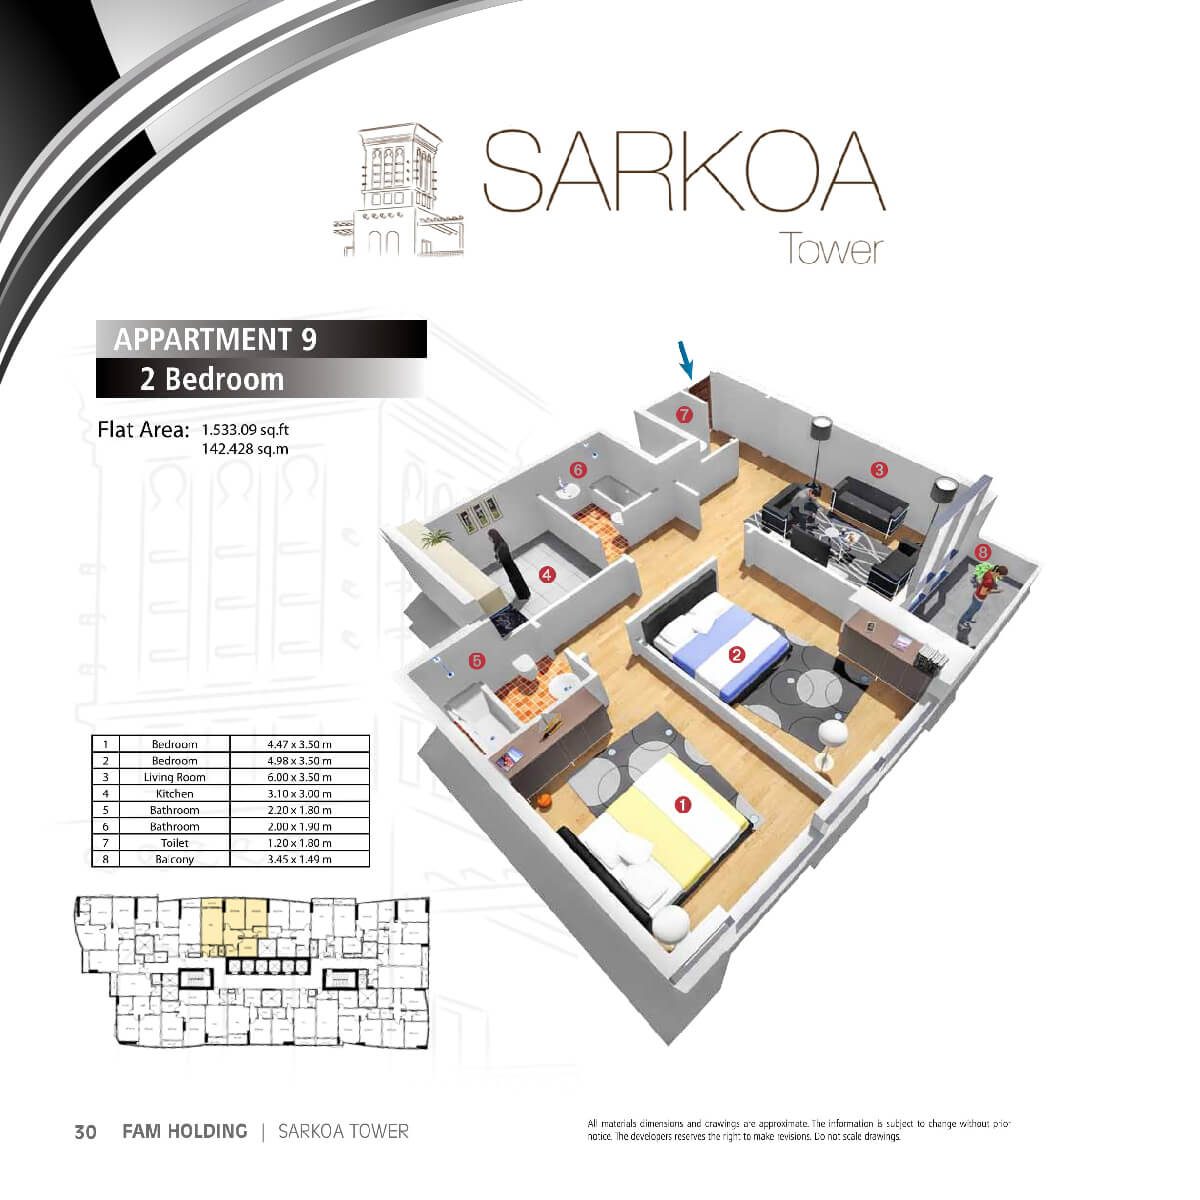 Planning of the apartment 2BR, 1533.09 in Sarkoa Tower, Sharjah